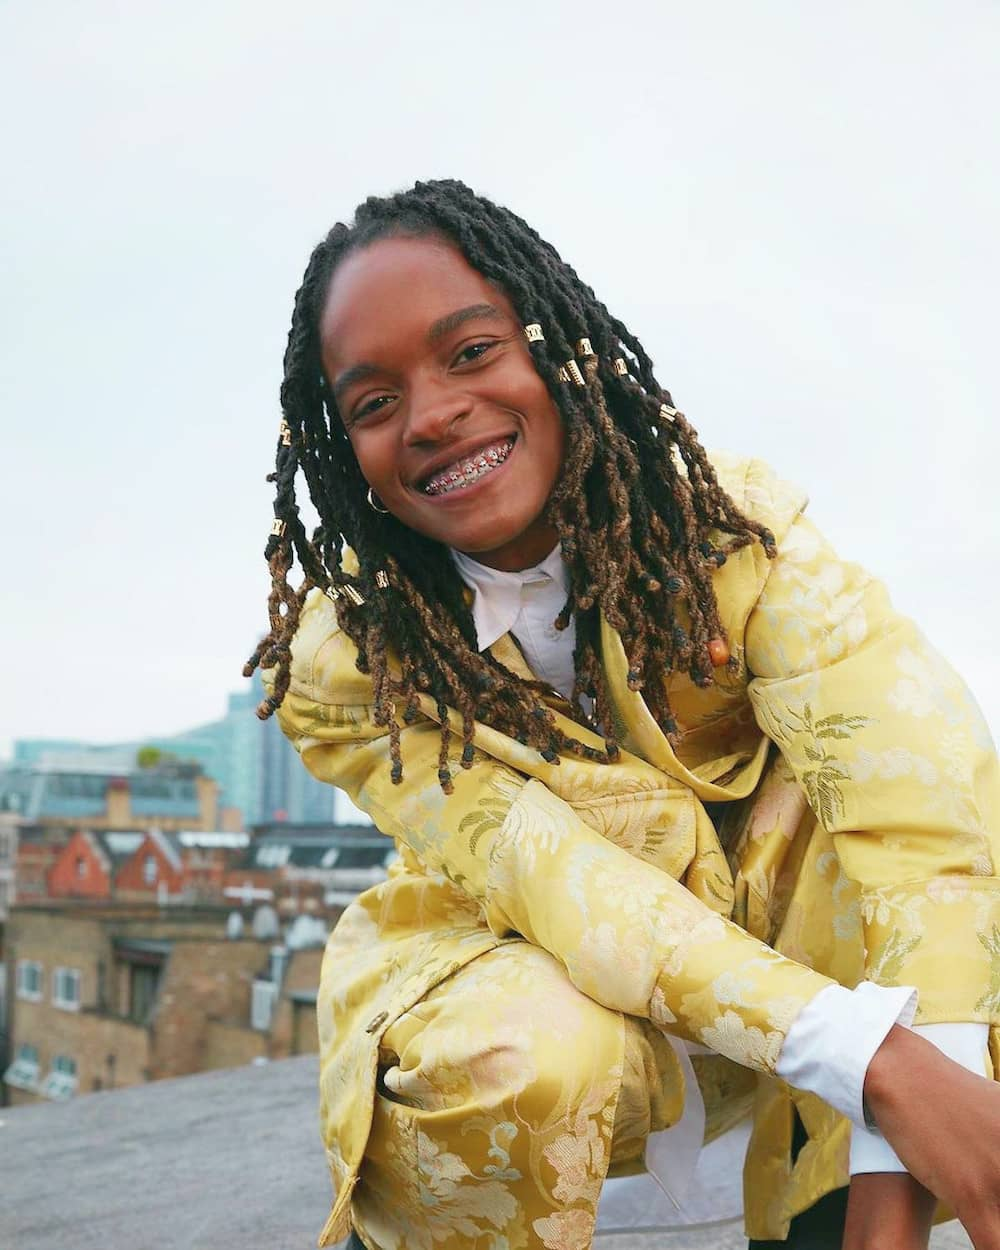 Koffee Featured On Obama Favourite Songs 2020 Playlist